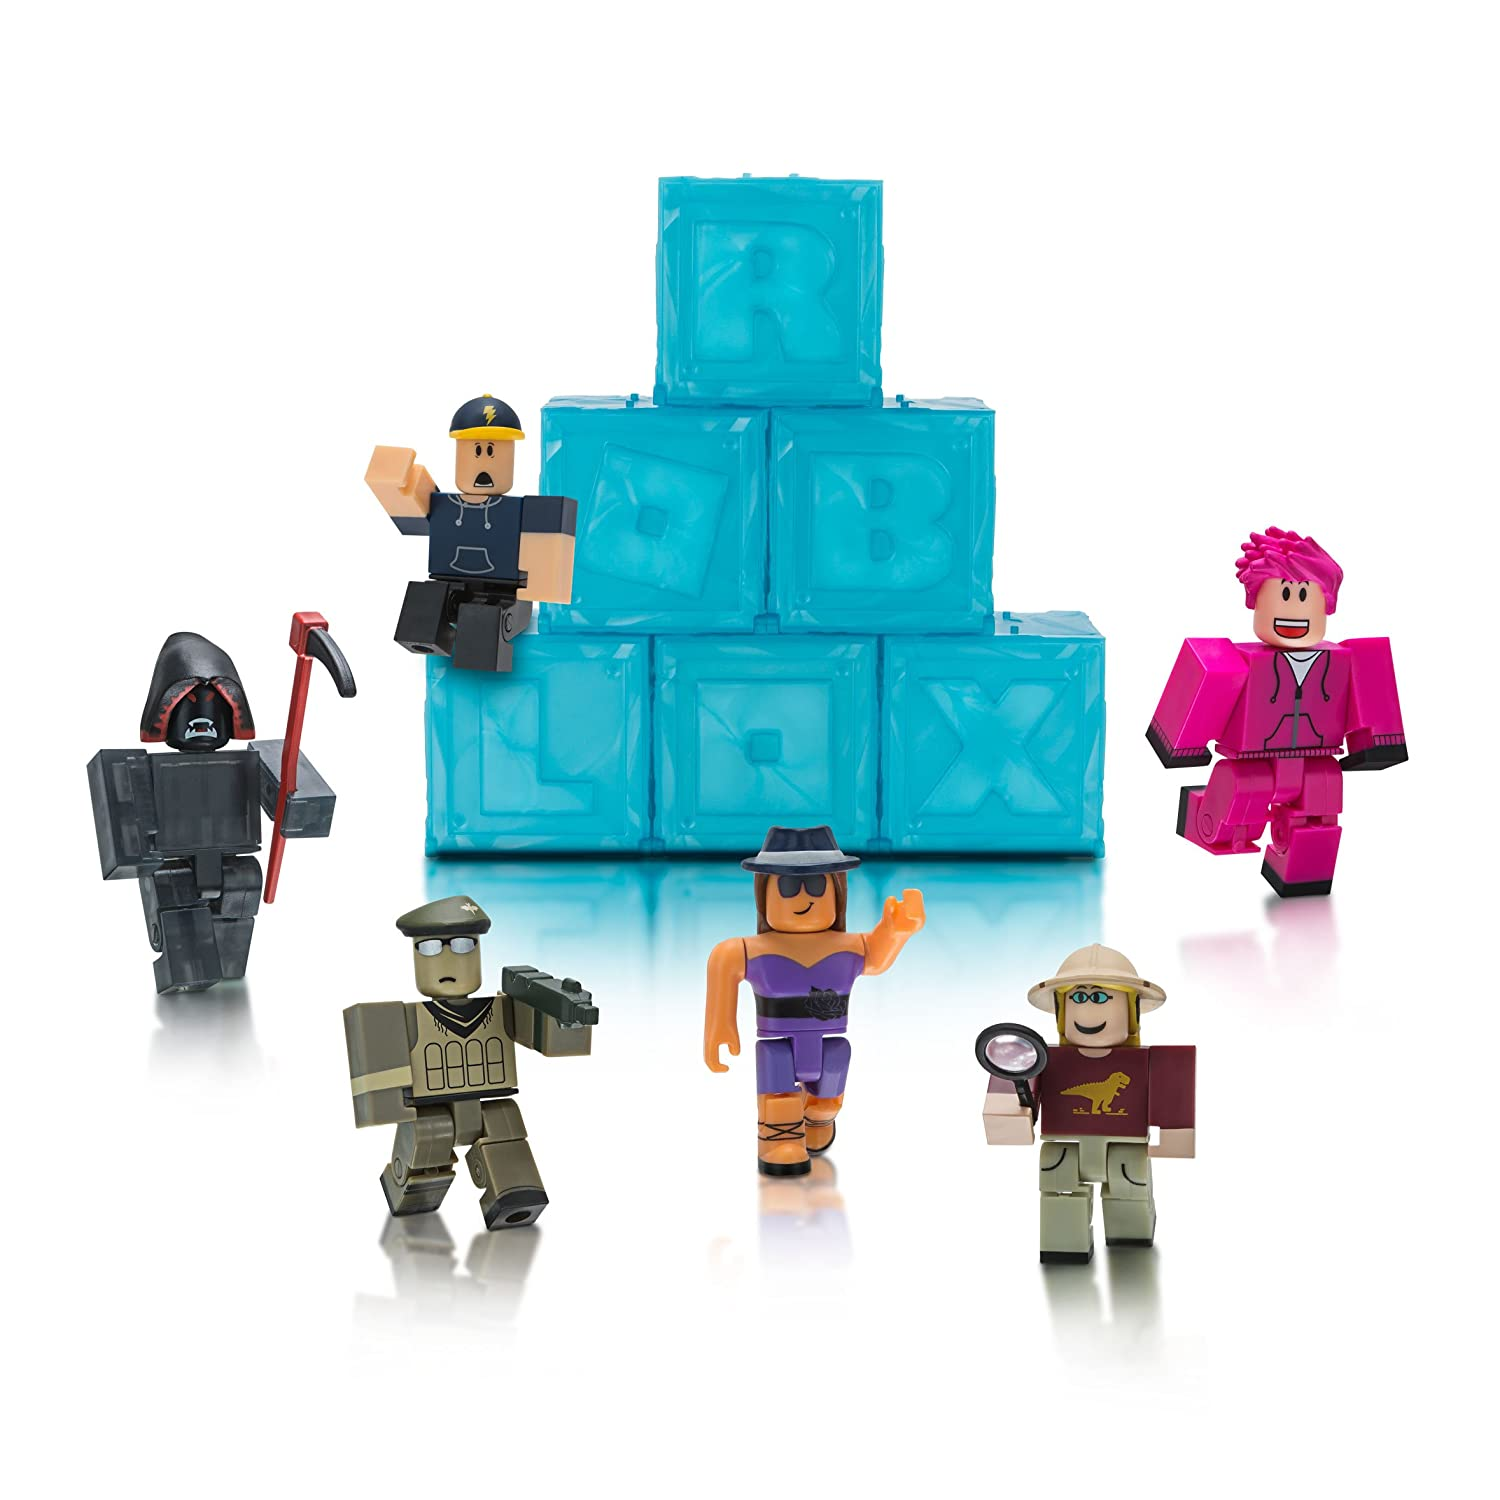 Roblox Series 3 Patient Zero Mini Figure Without Code No Packaging - Roblox Series 3 Mystery Figures